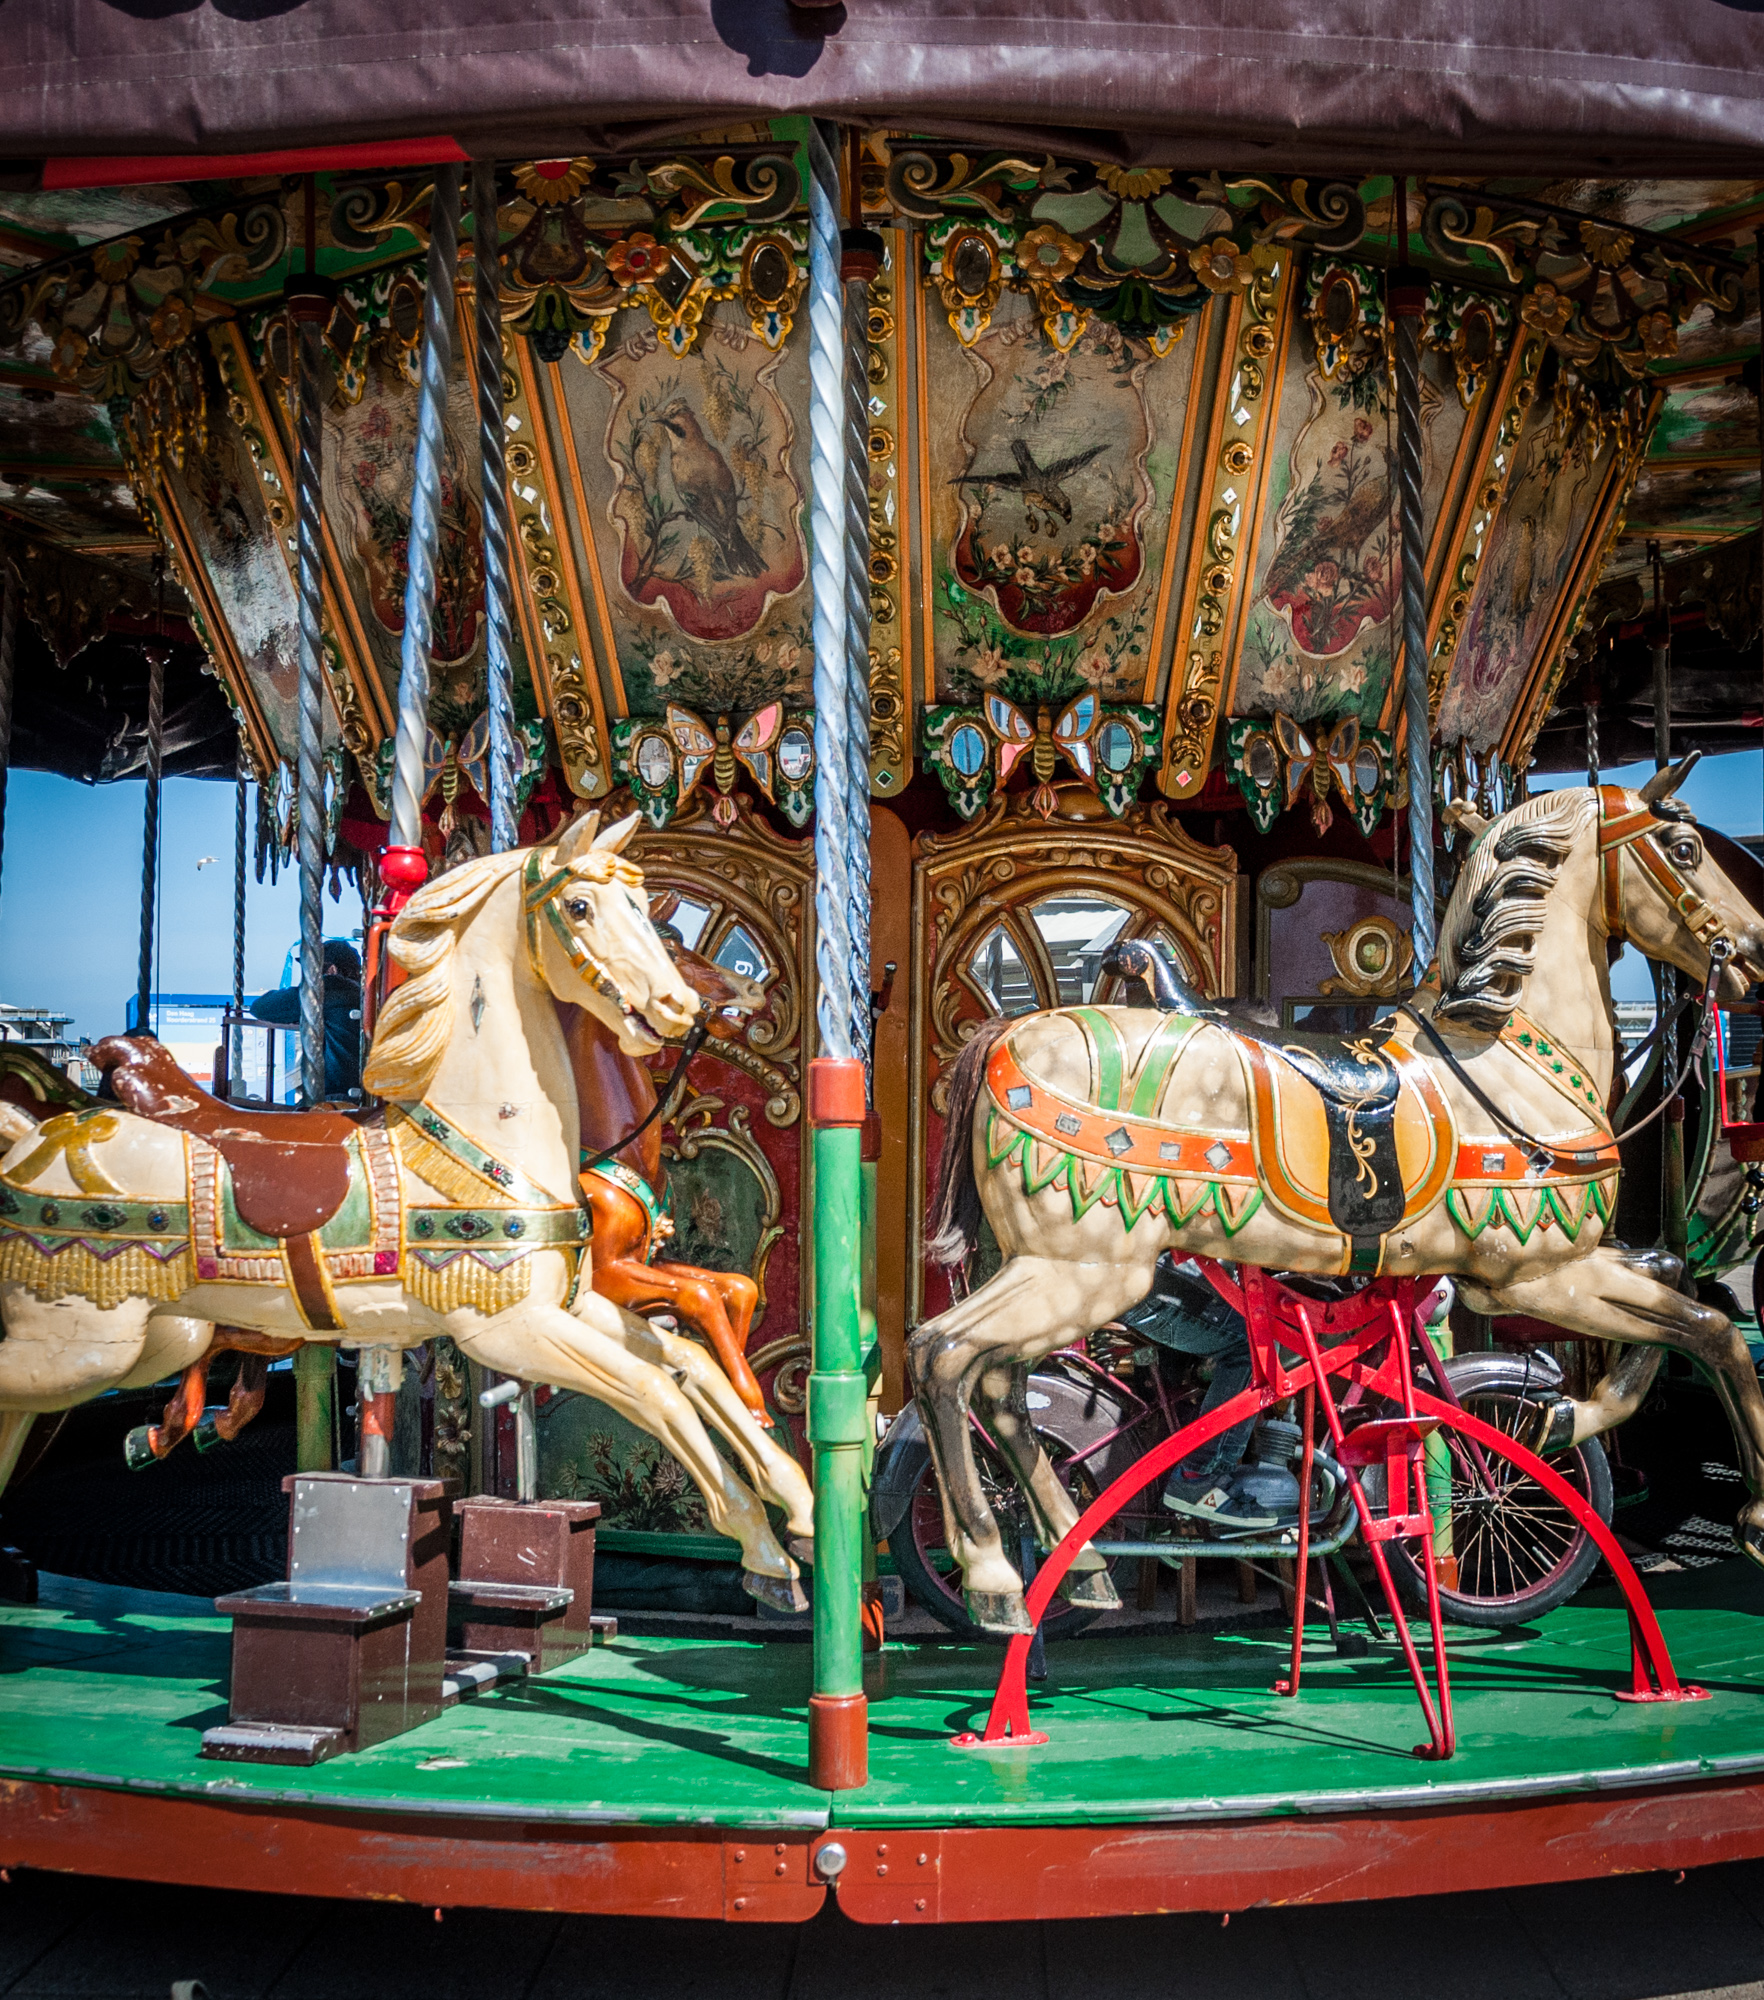 Old carousel, Amusement, Outside, Paris, Park, HQ Photo